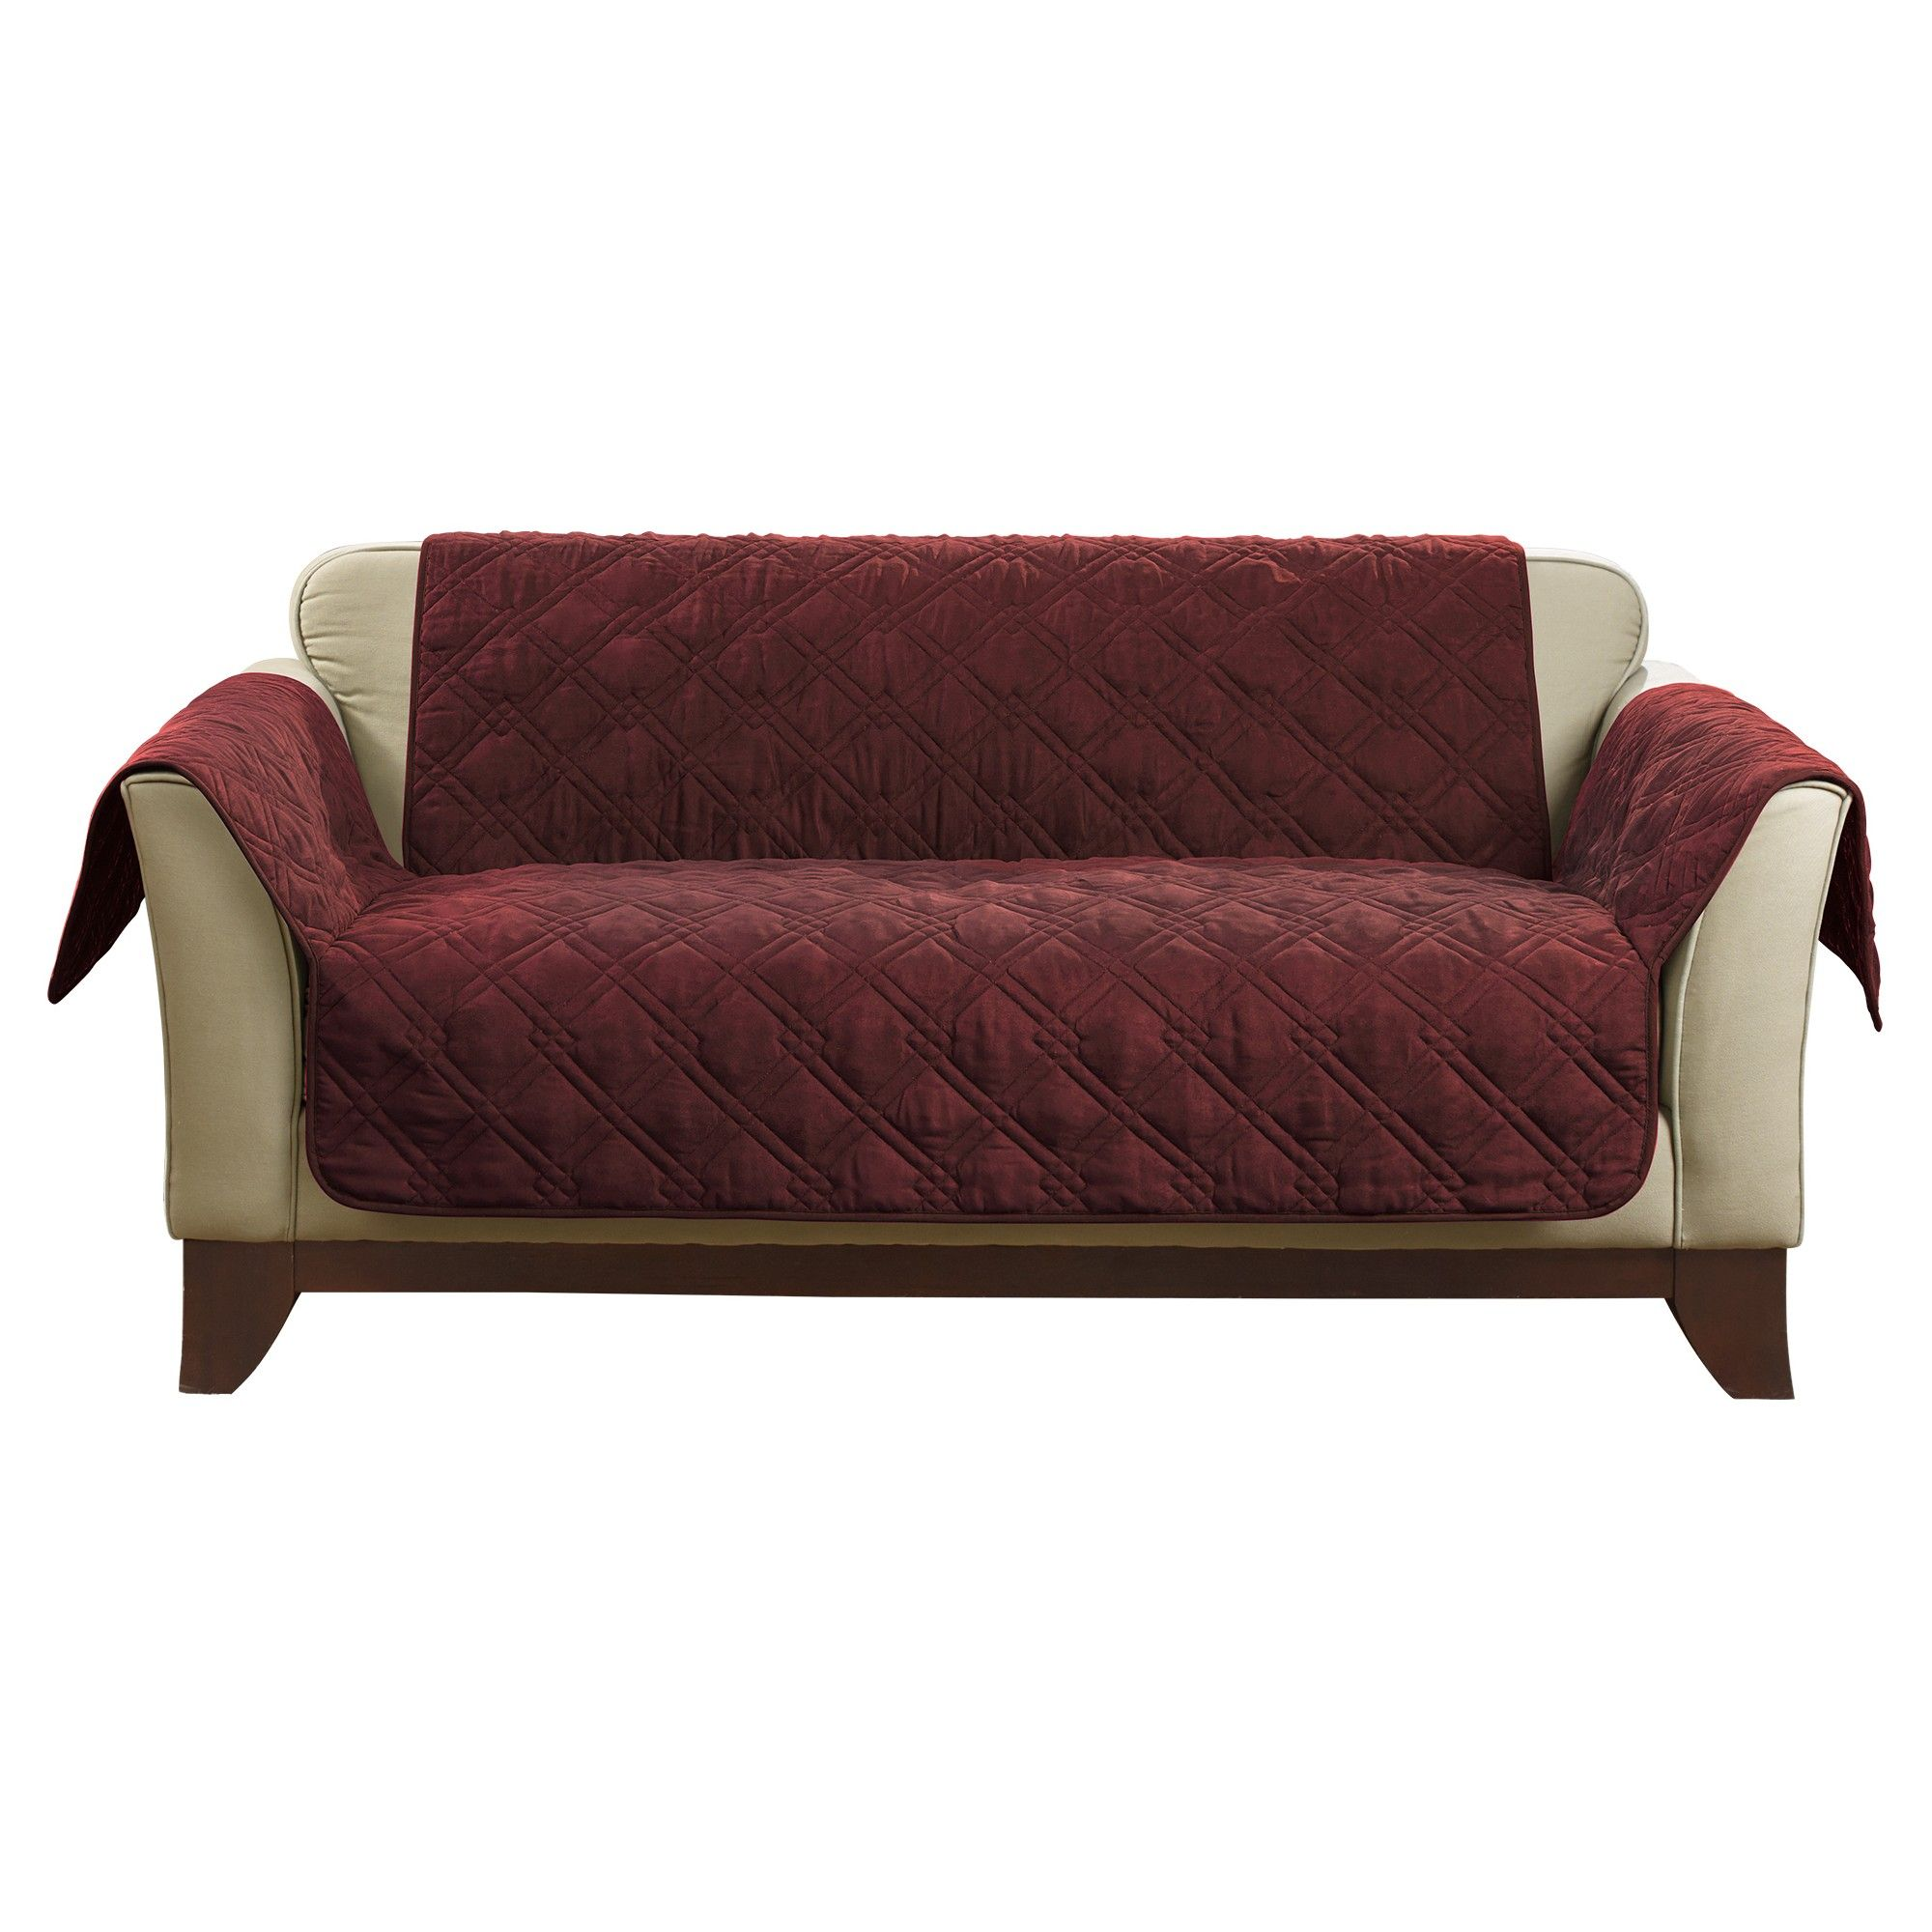 sure fit patio furniture covers. Wine Deluxe Non-Skid Waterproof Loveseat Furniture Cover - Sure Fit Patio Covers